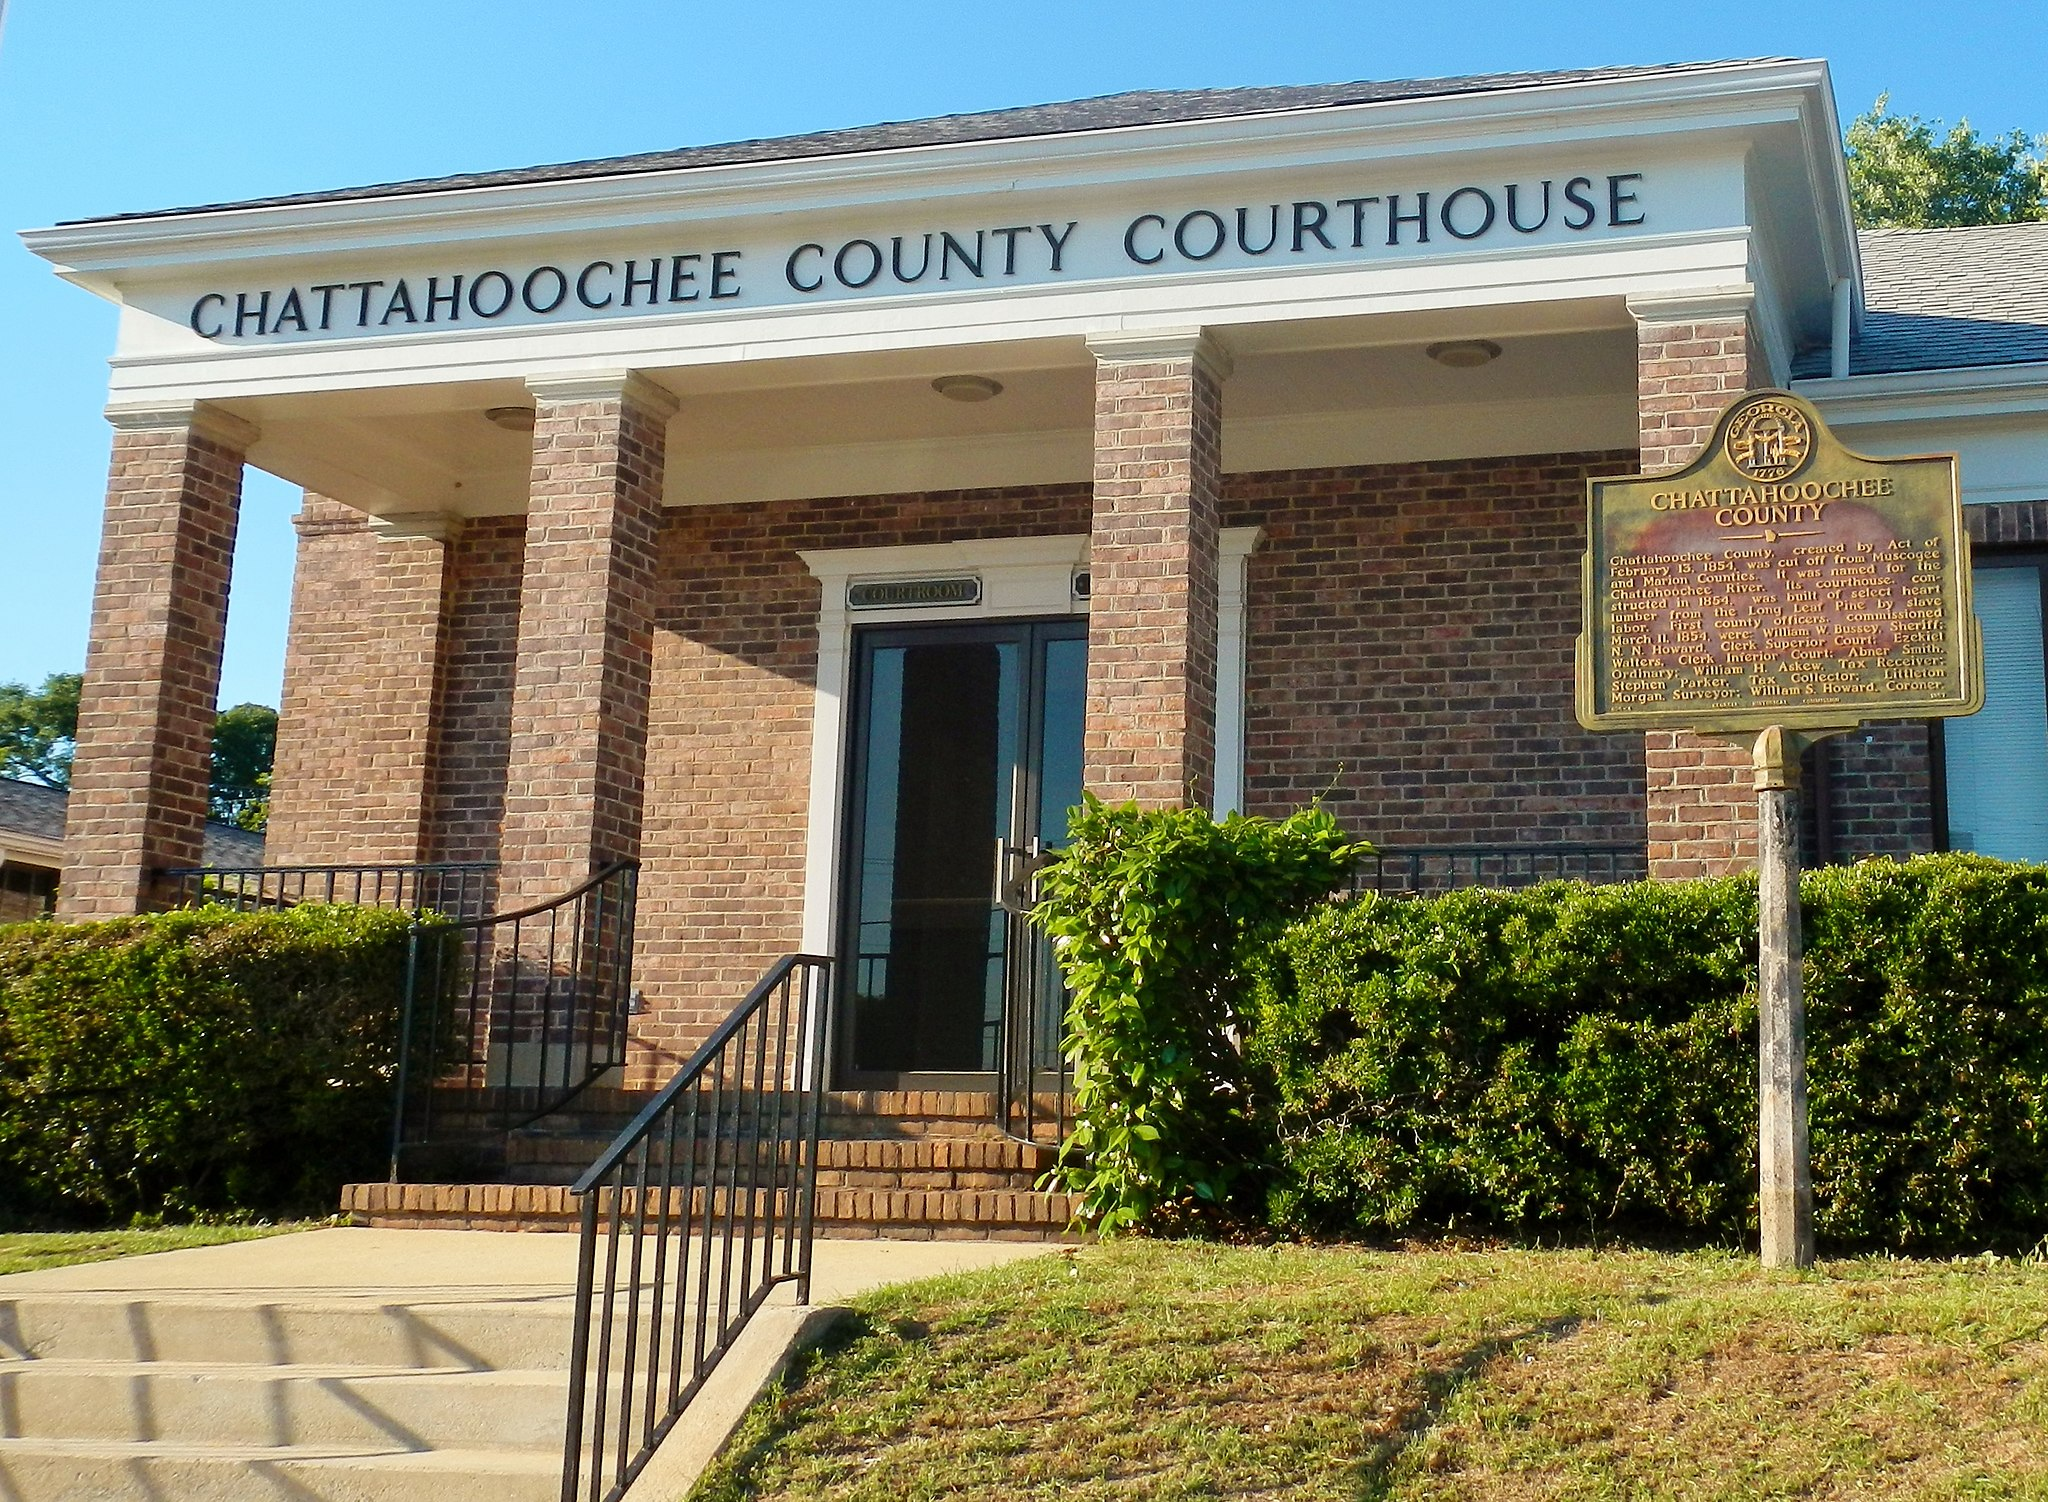 Chattahoochee County, Georgia Courthouse